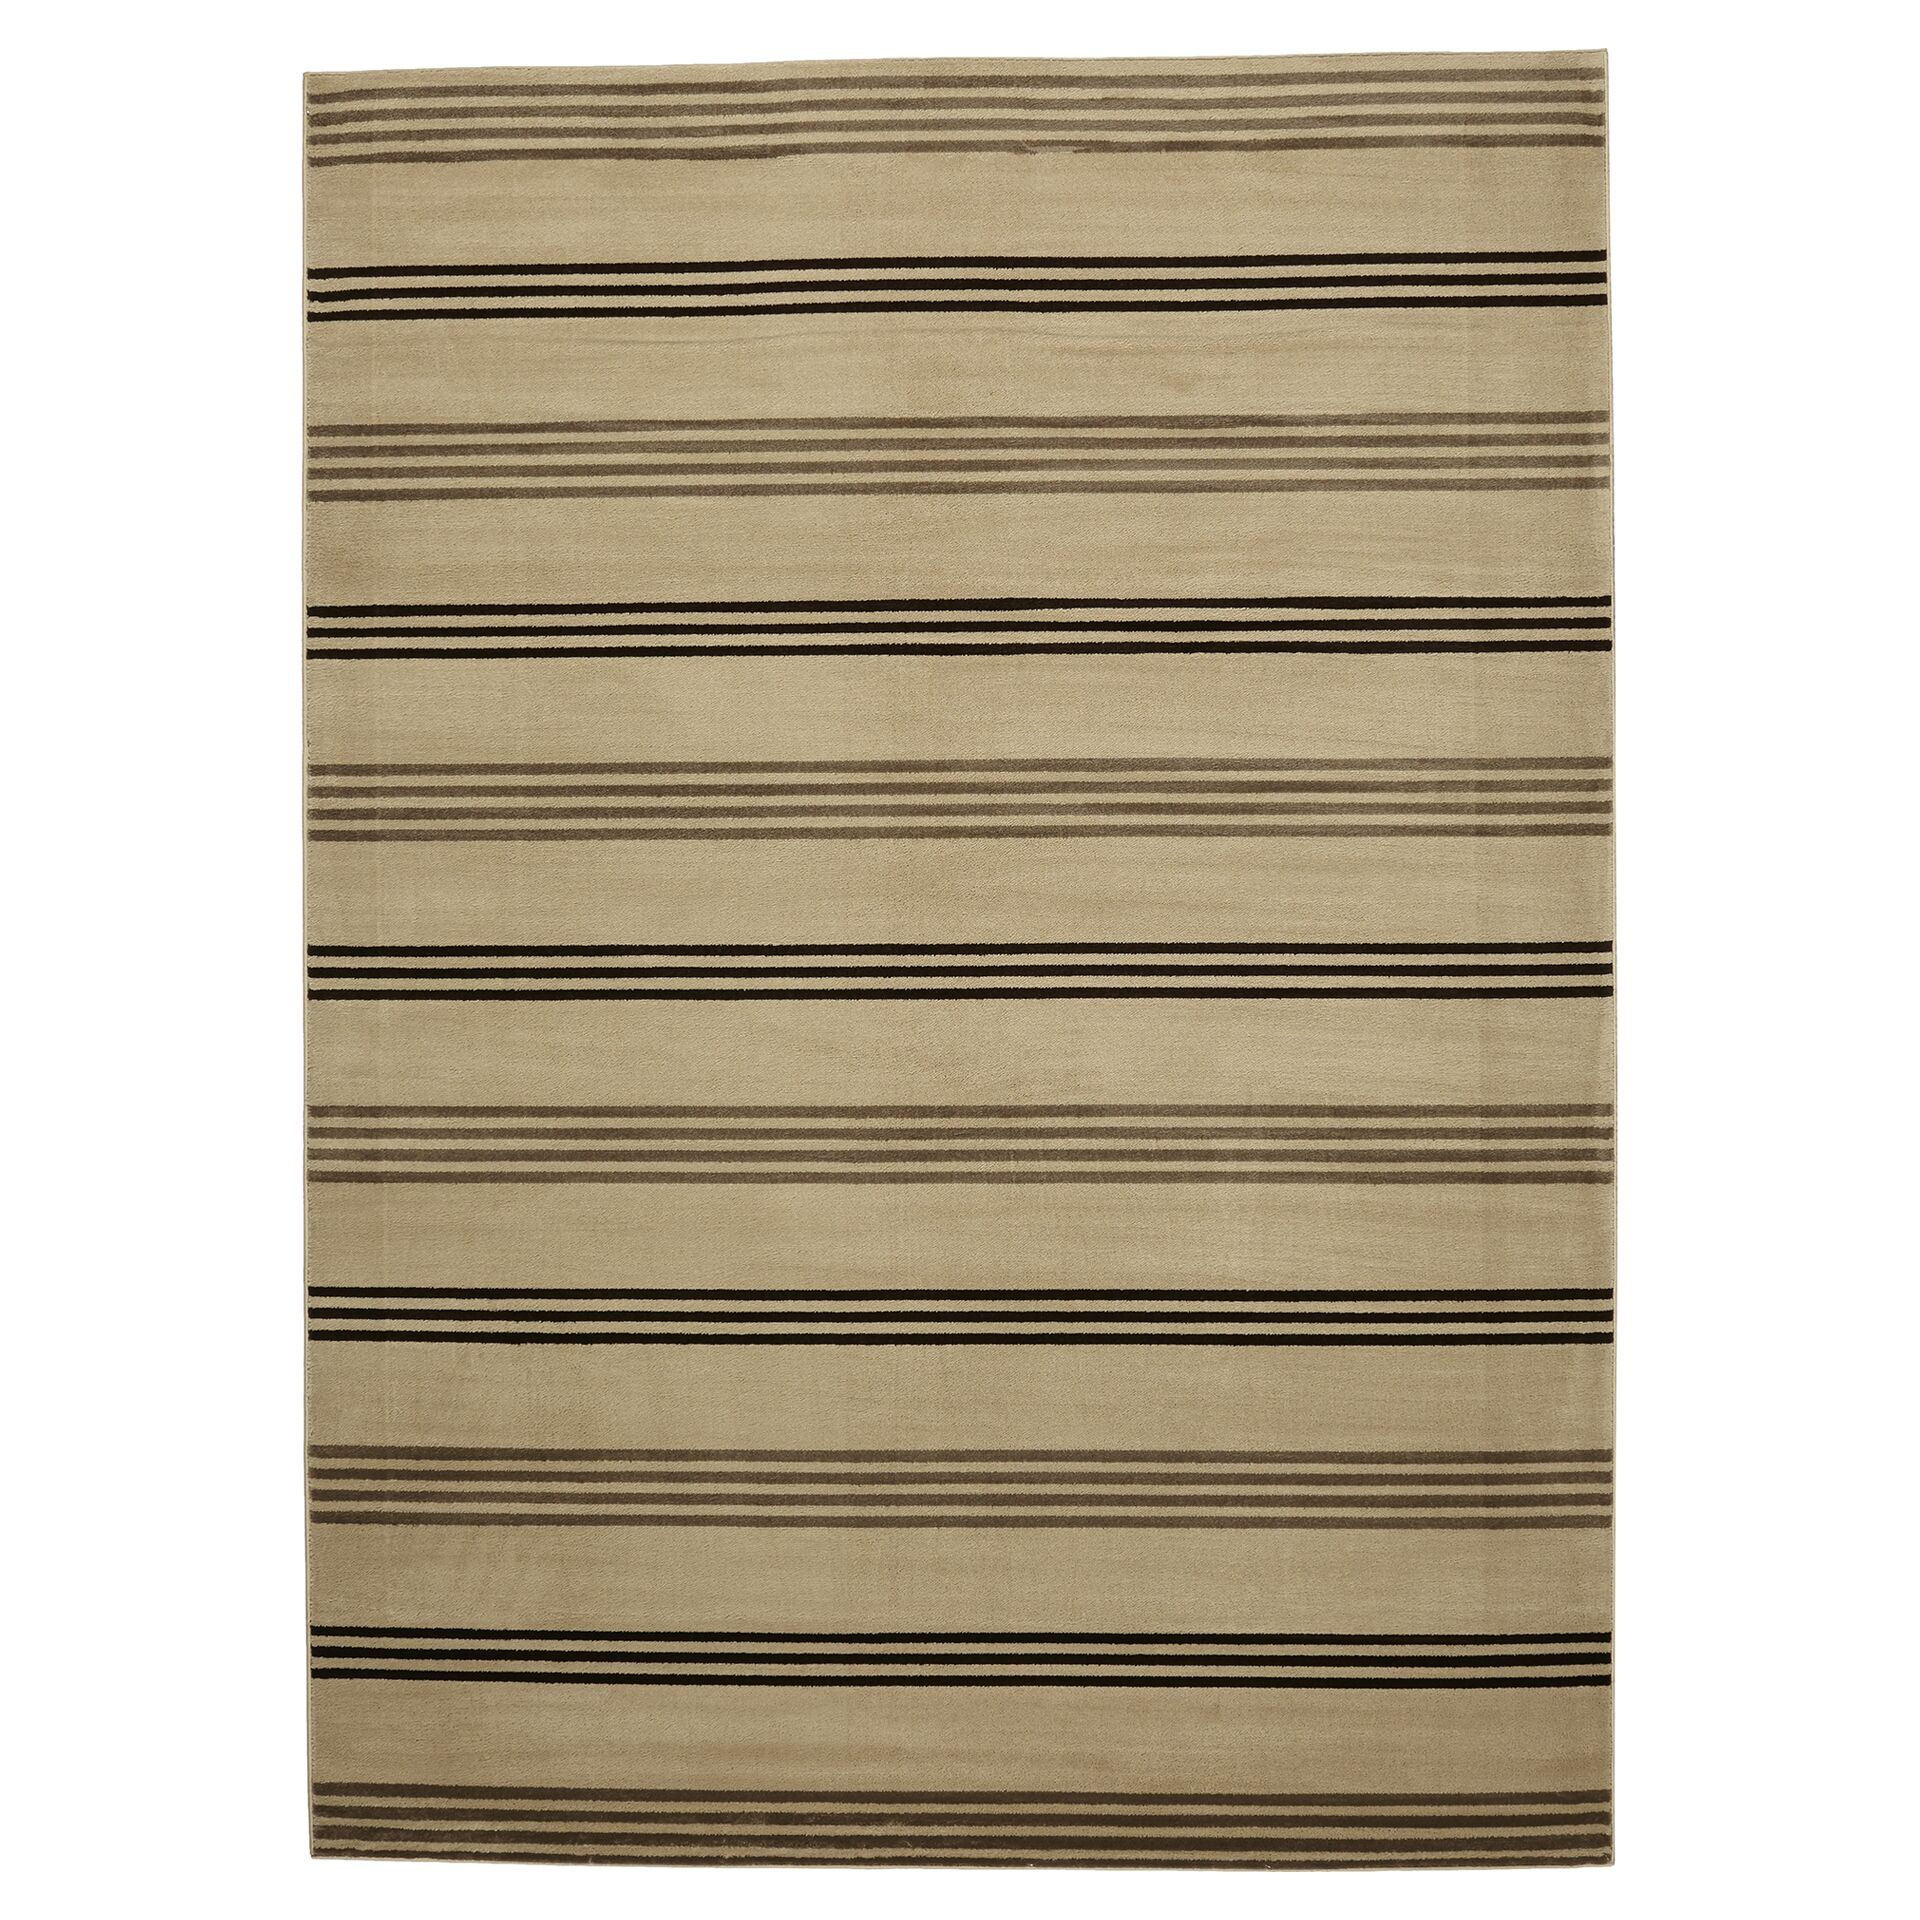 Pleasantville Beige Area Rug Rug Size: Rectangle 3'3